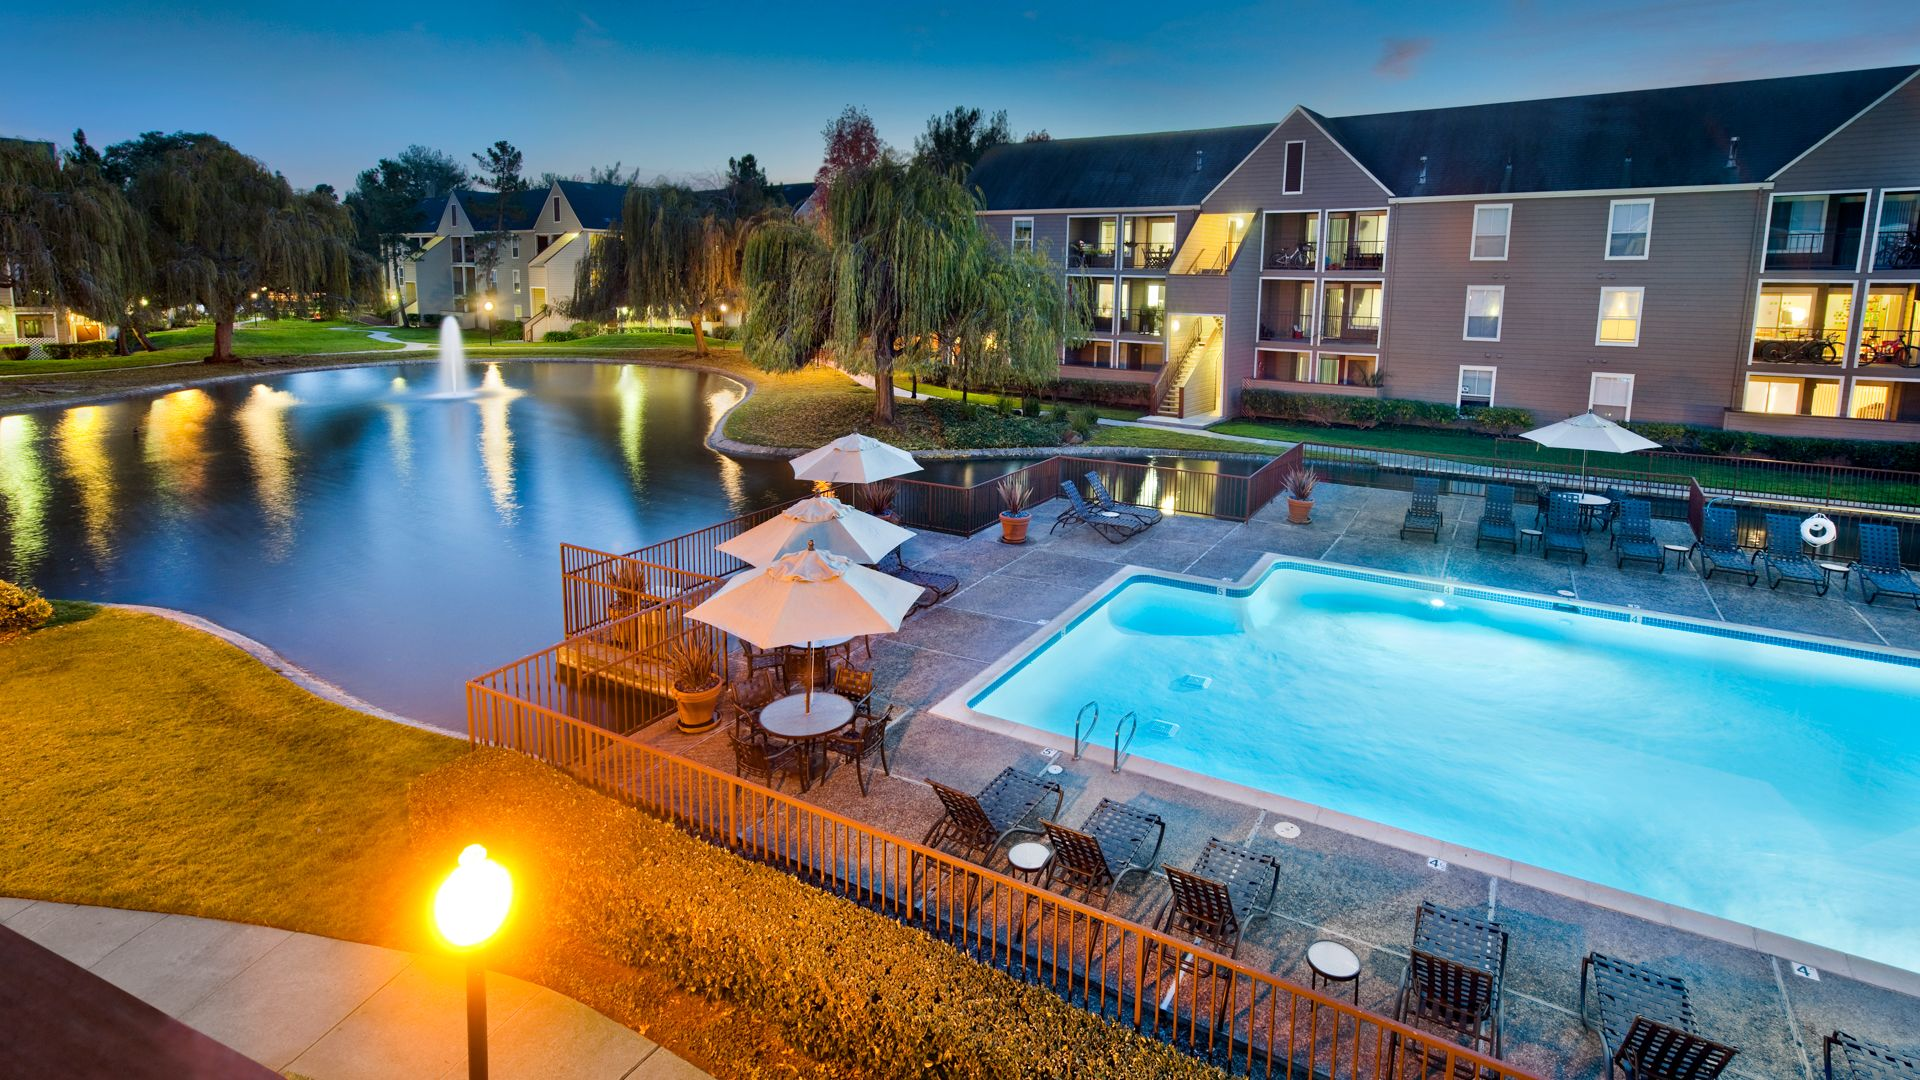 Silicon Valley Apartments - 26 Apartment Communities from Equity ...